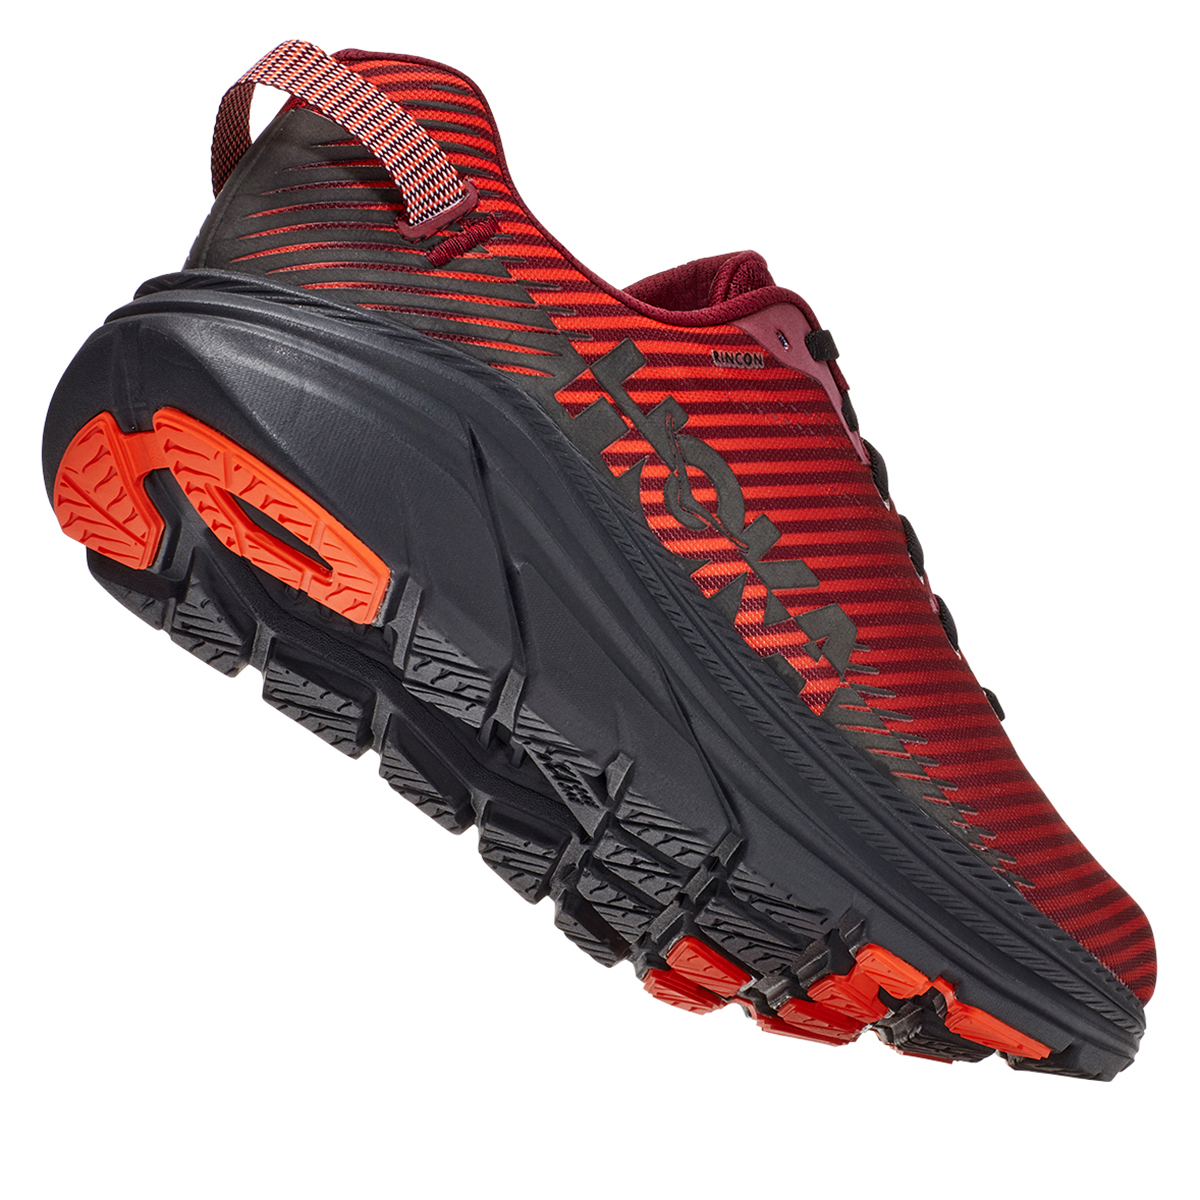 Men's Hoka One One Rincon 2 Running Shoe - Color: Cordovan/Anthracite - Size: 7 - Width: Regular, Cordovan/Anthracite, large, image 5